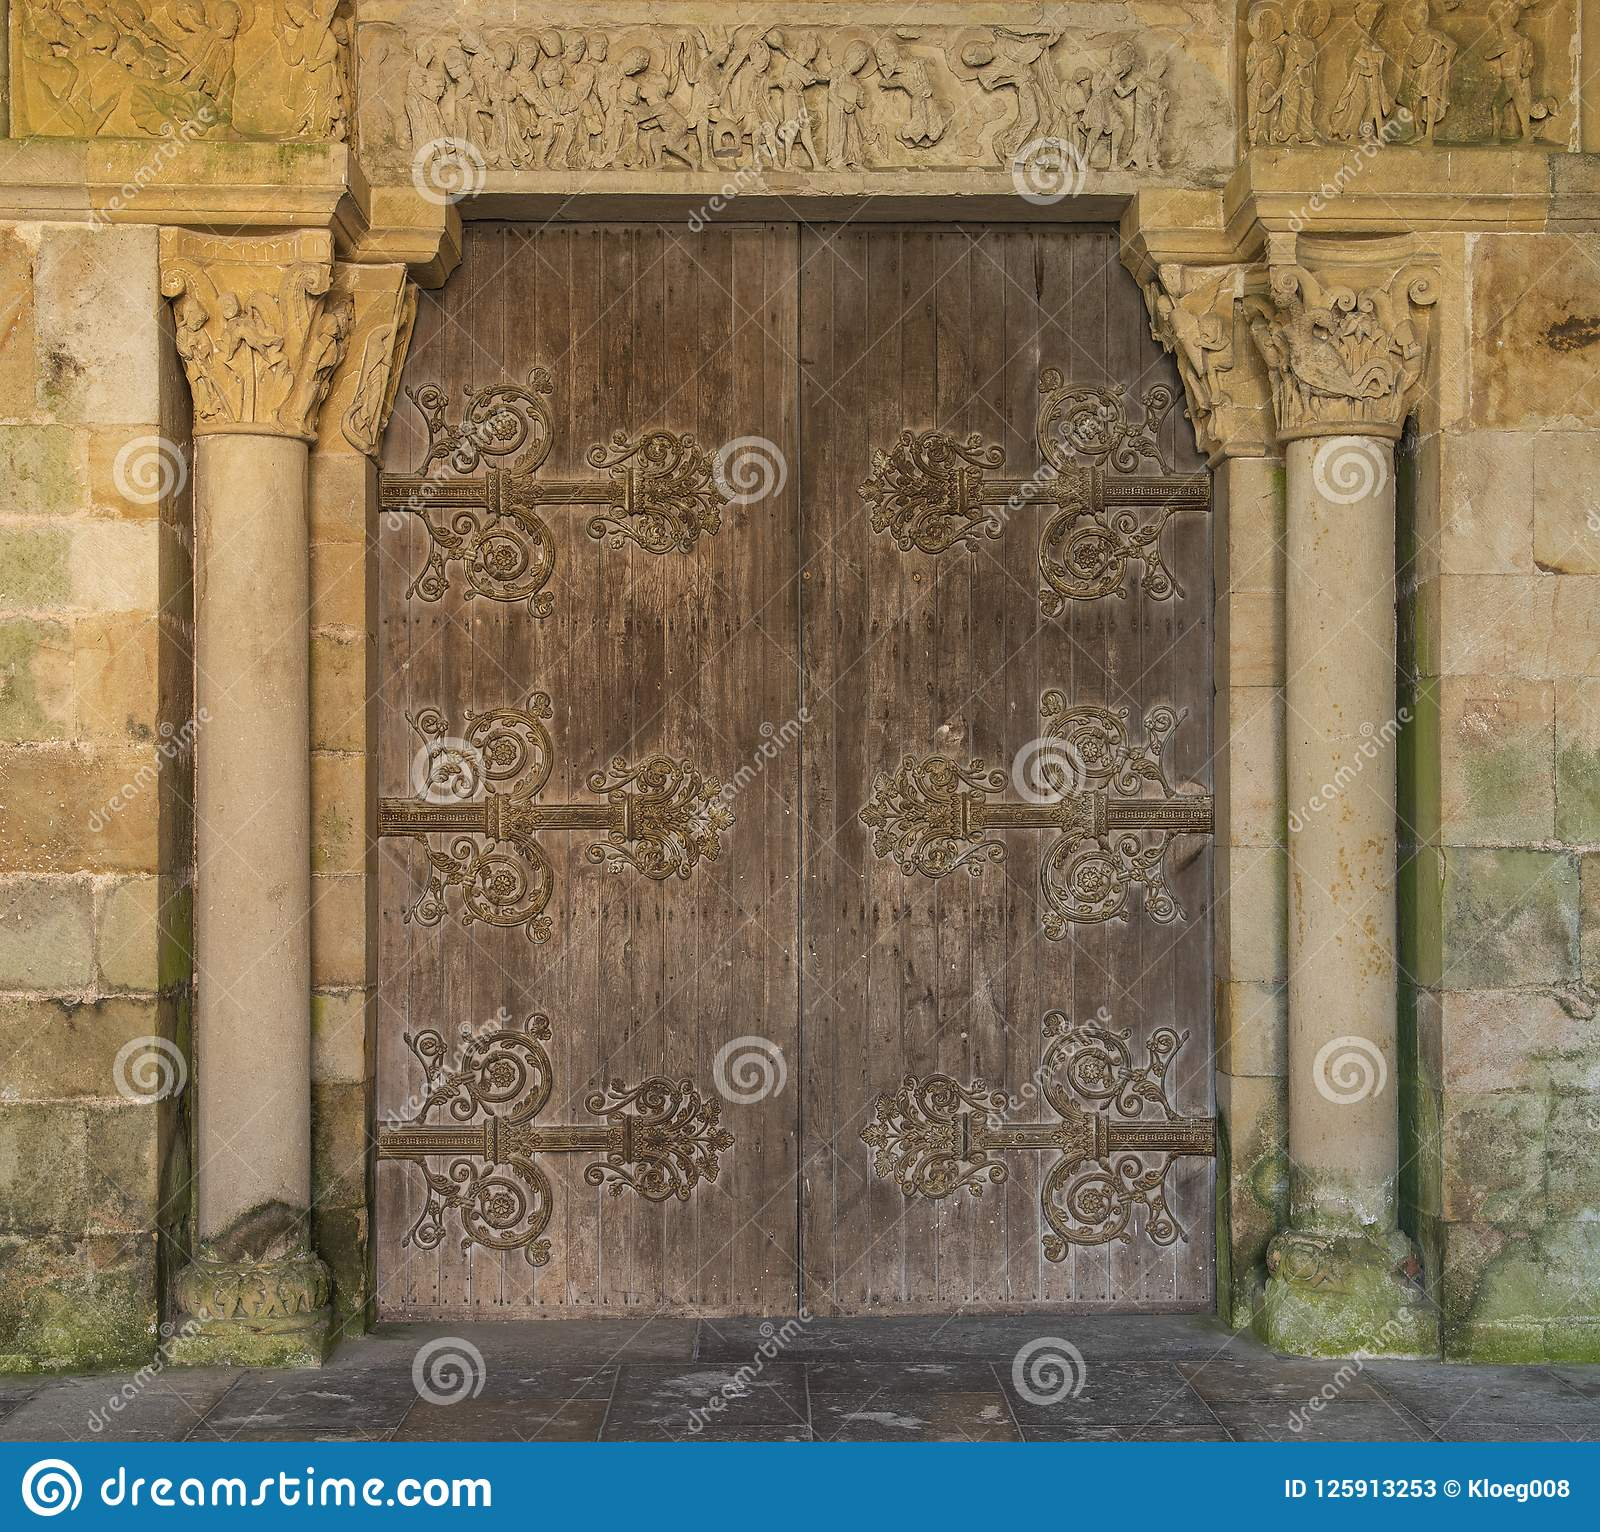 Pierre Bourgogne Church Door In Perrecy Les Forges France Stock Image Image Of